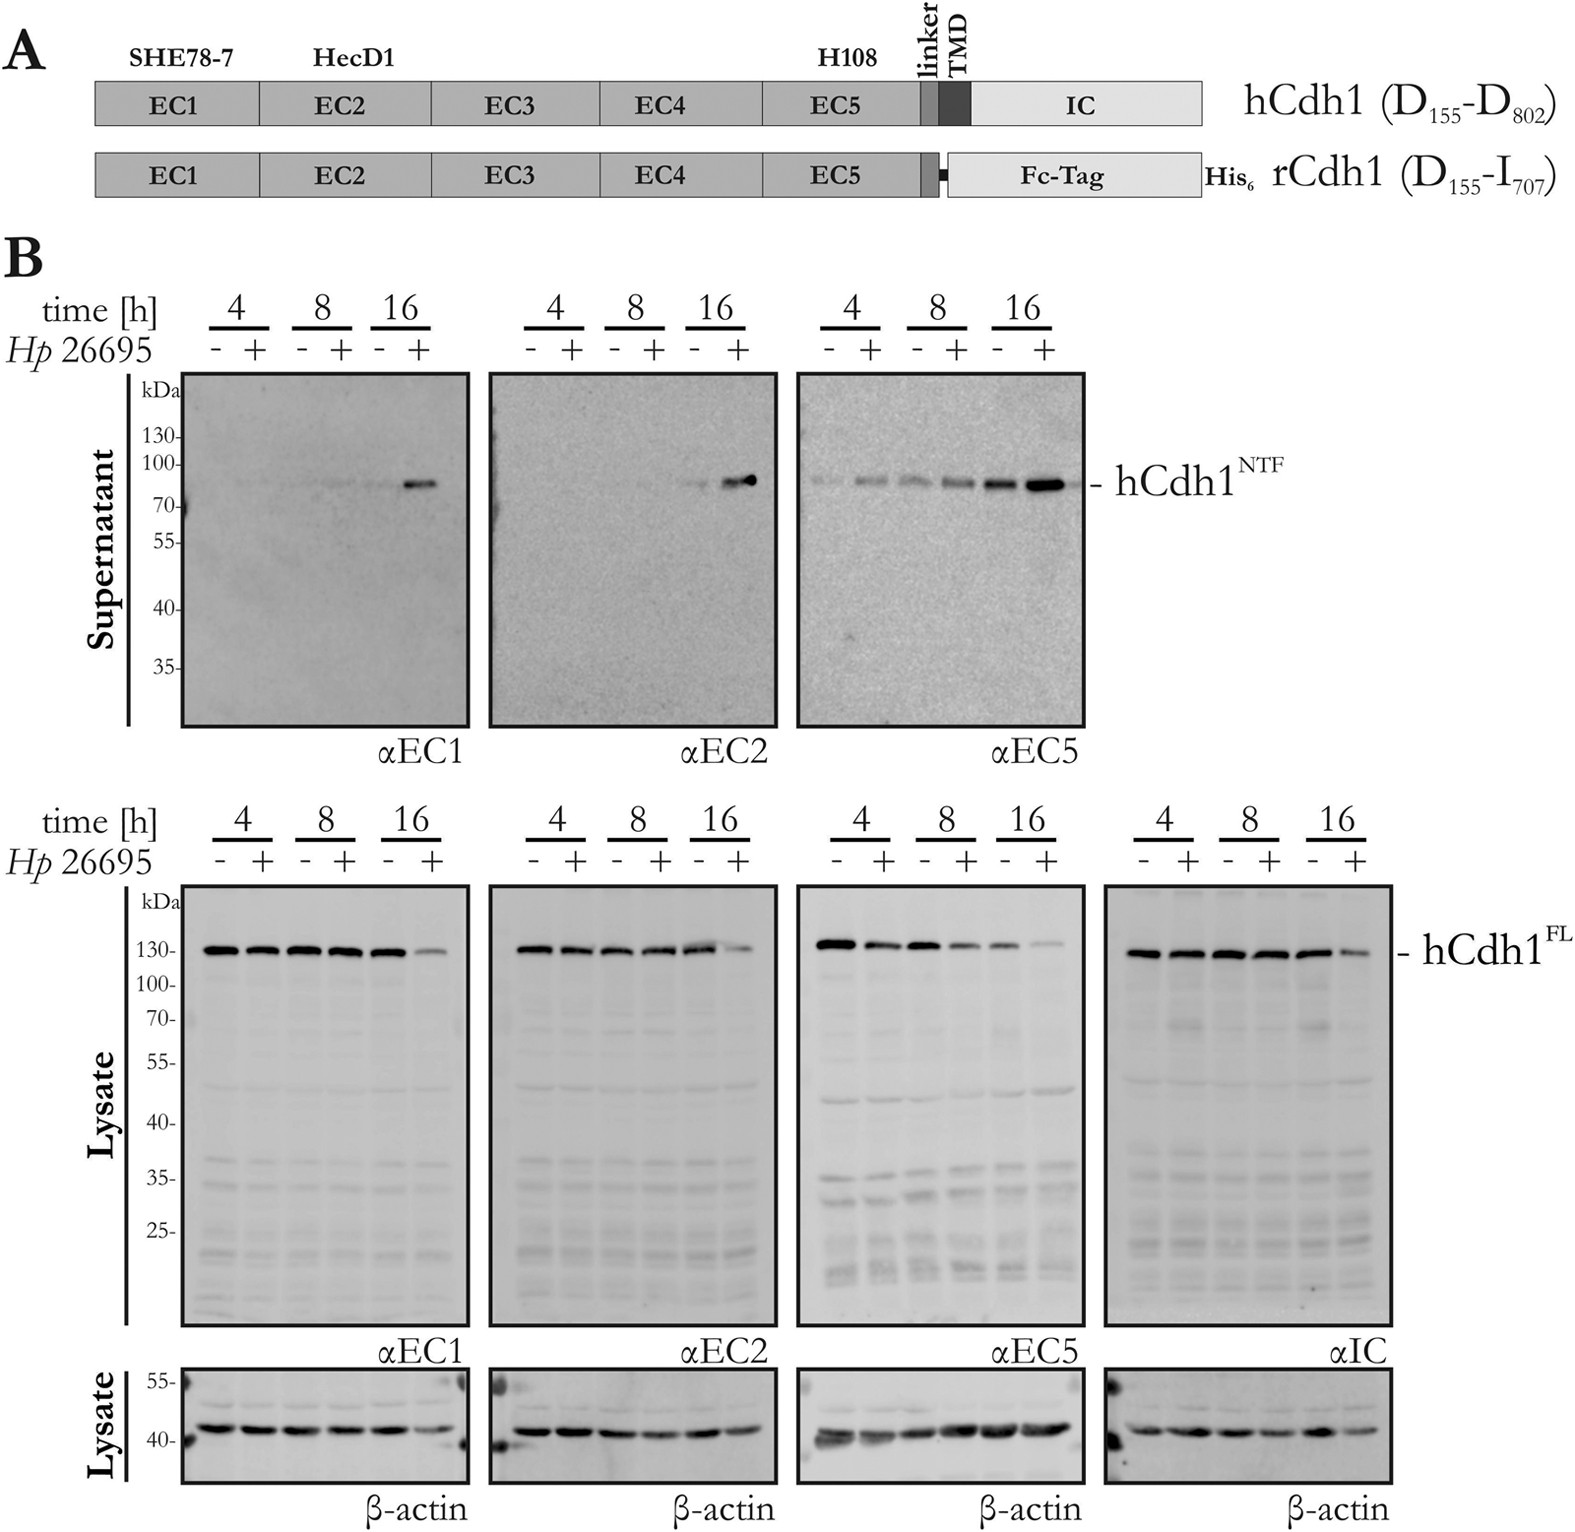 Identification of E-cadherin signature motifs functioning as